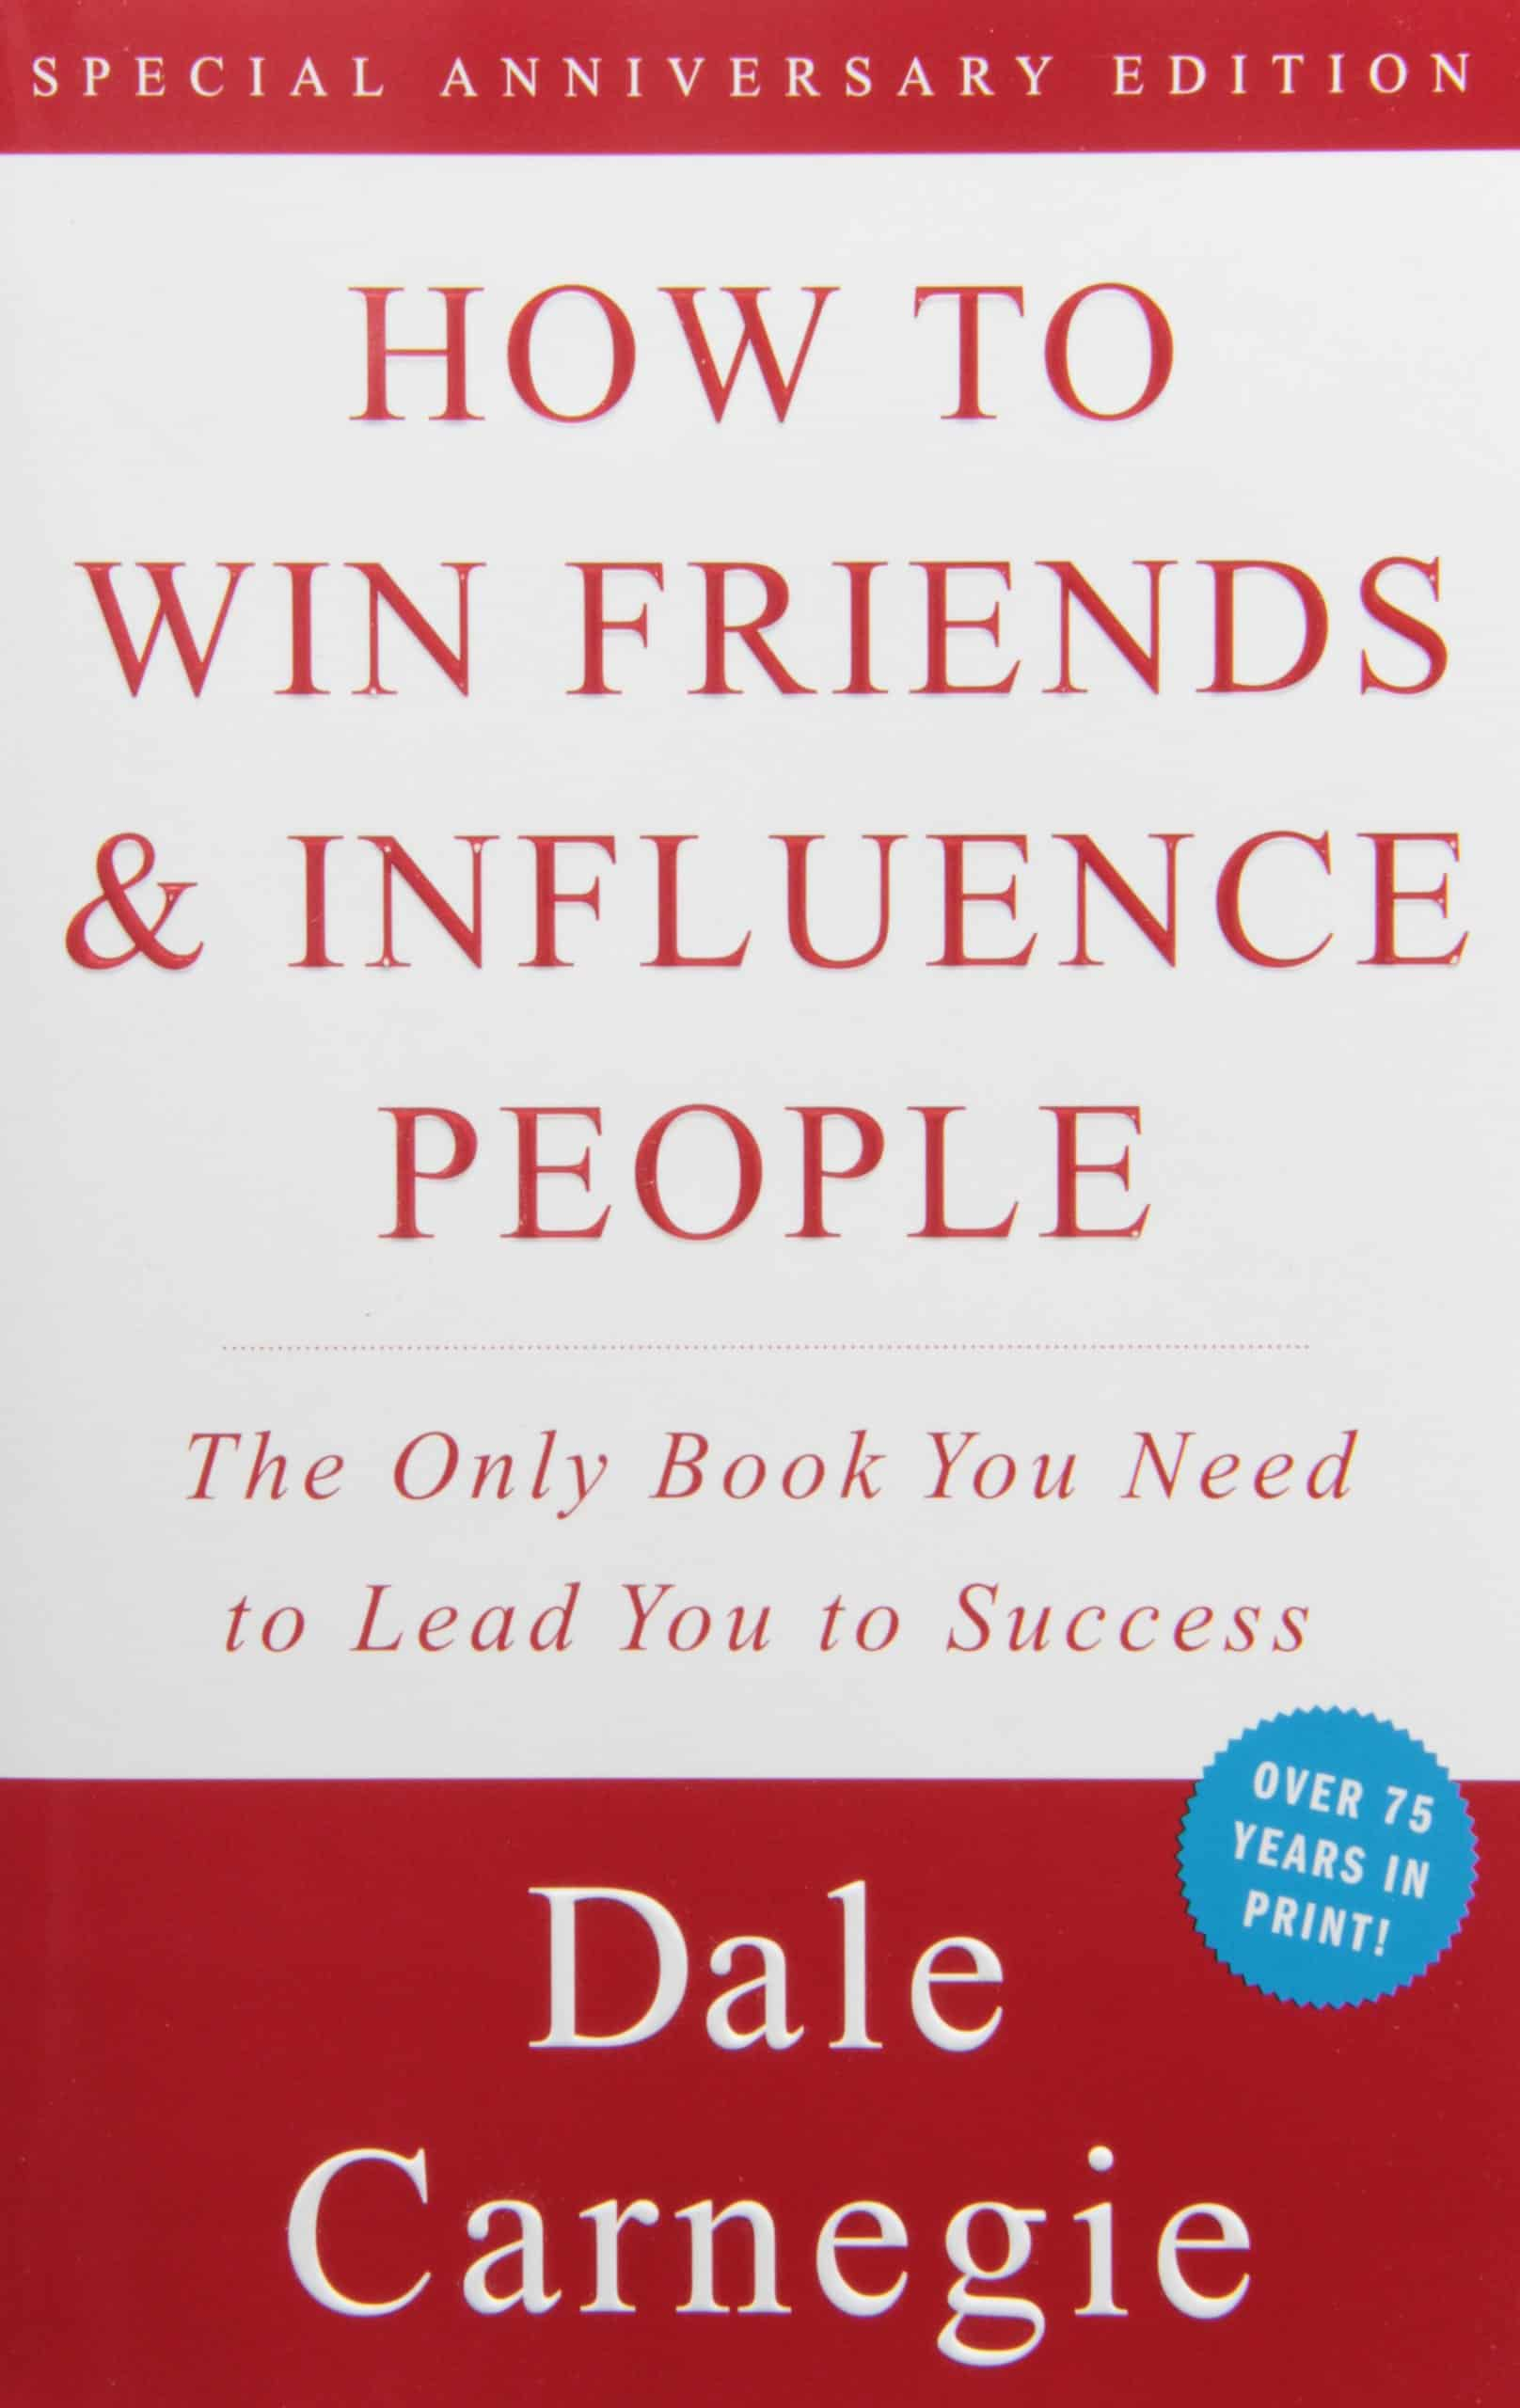 Home / Shop / Books / Hard Cover / How to Win Friends & Influence People